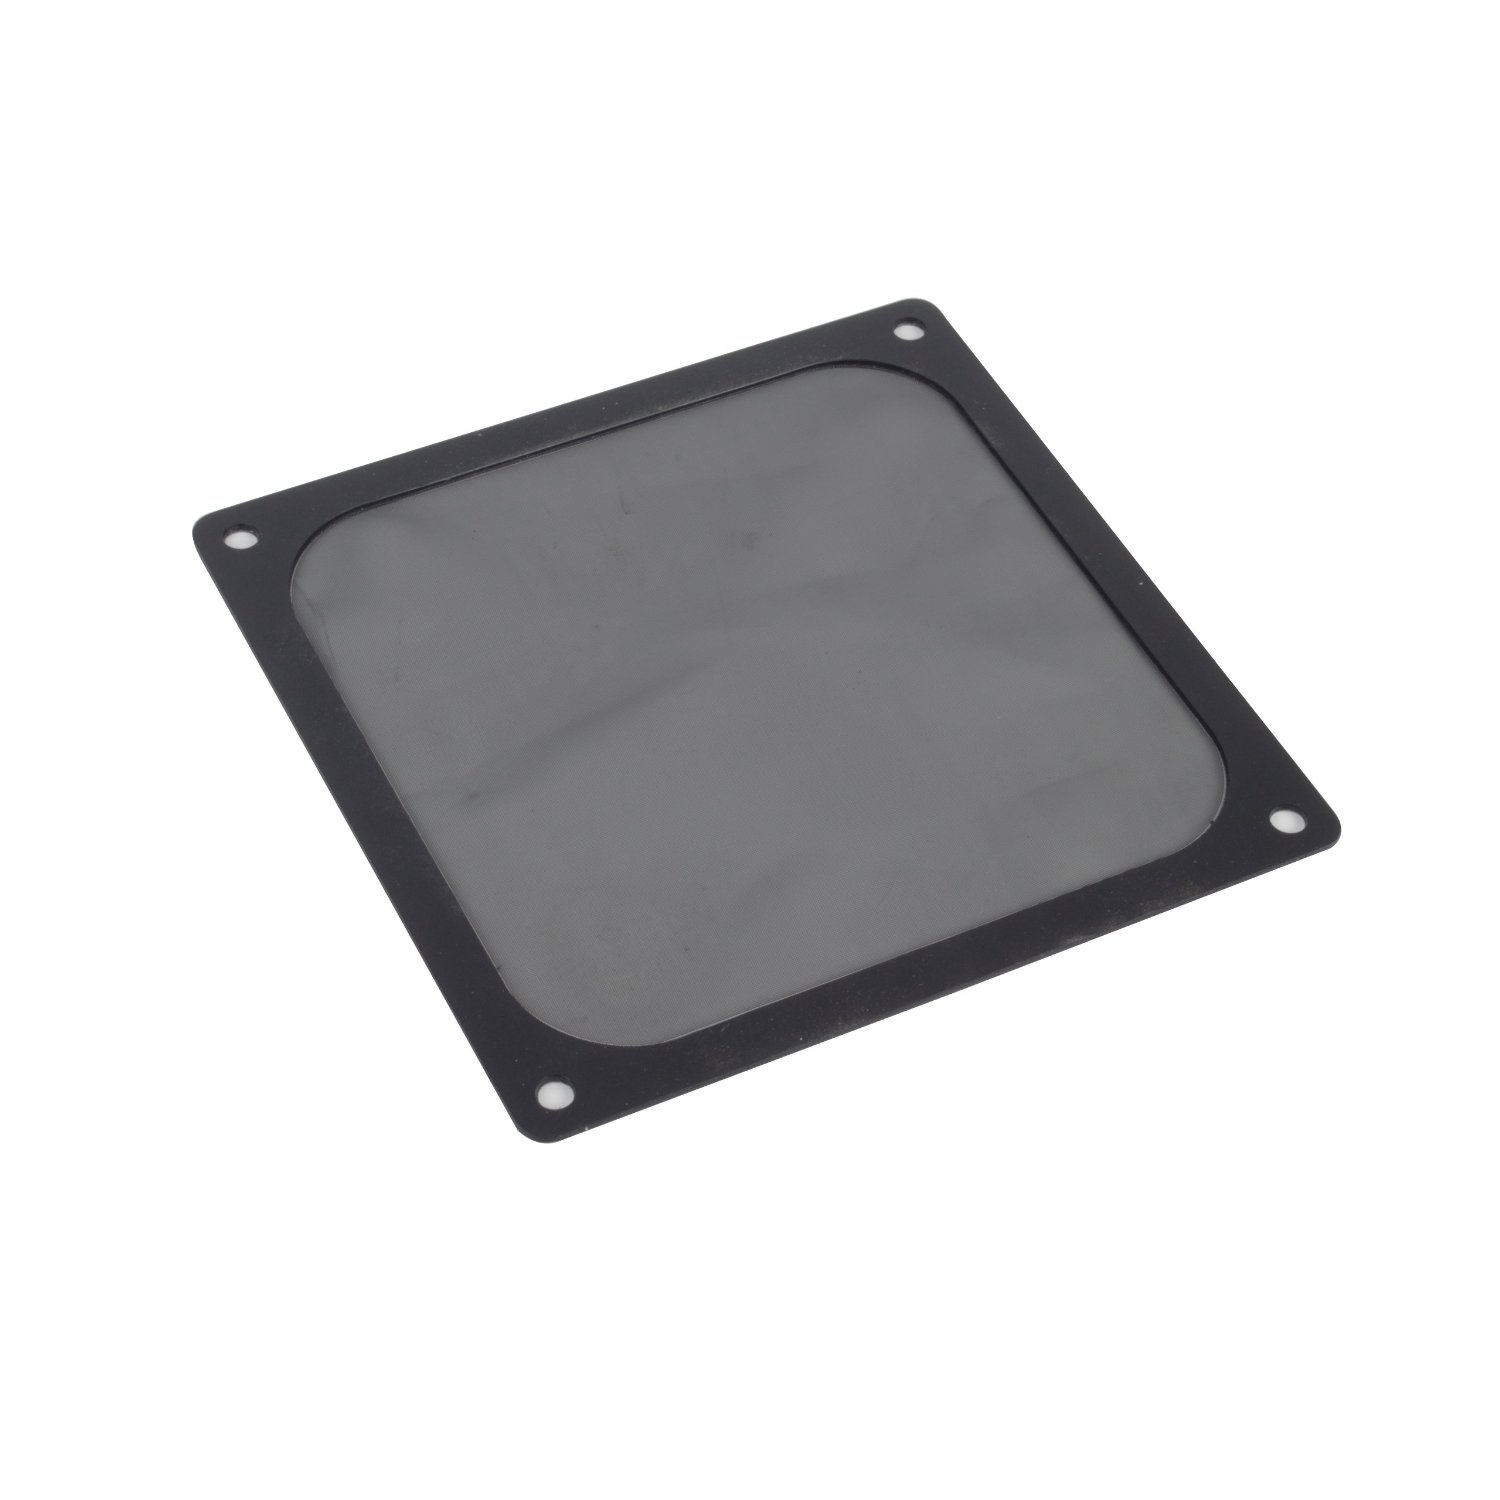 Silverstone Tek 140mm Ultra Fine Fan Filter with Magnet Cooling FF143B (Black)